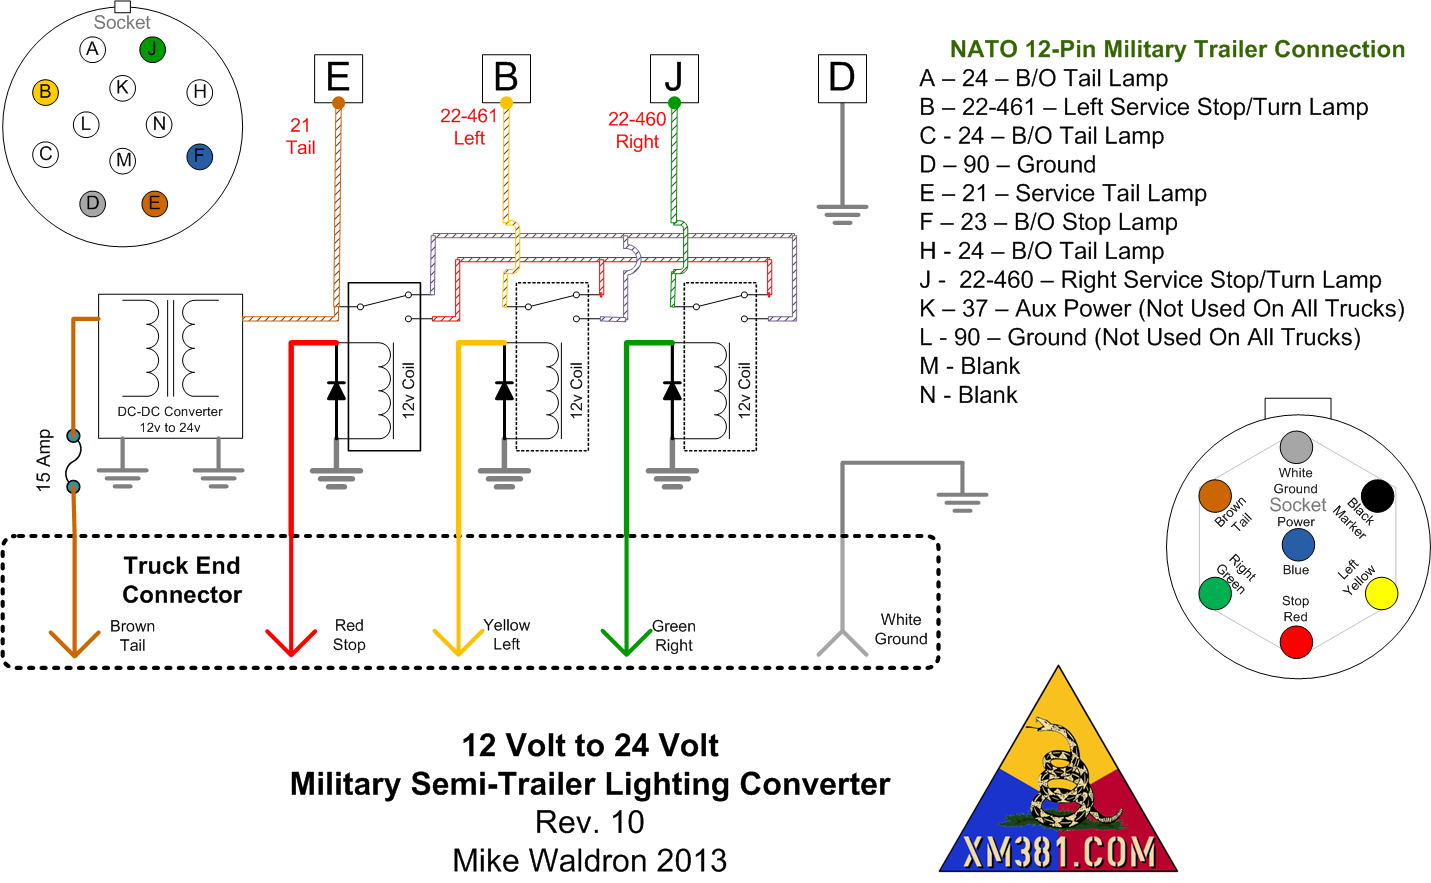 Xm381 12 volt civllian truck to 24 volt military trailer lighting military trailers nato socket cheapraybanclubmaster Choice Image